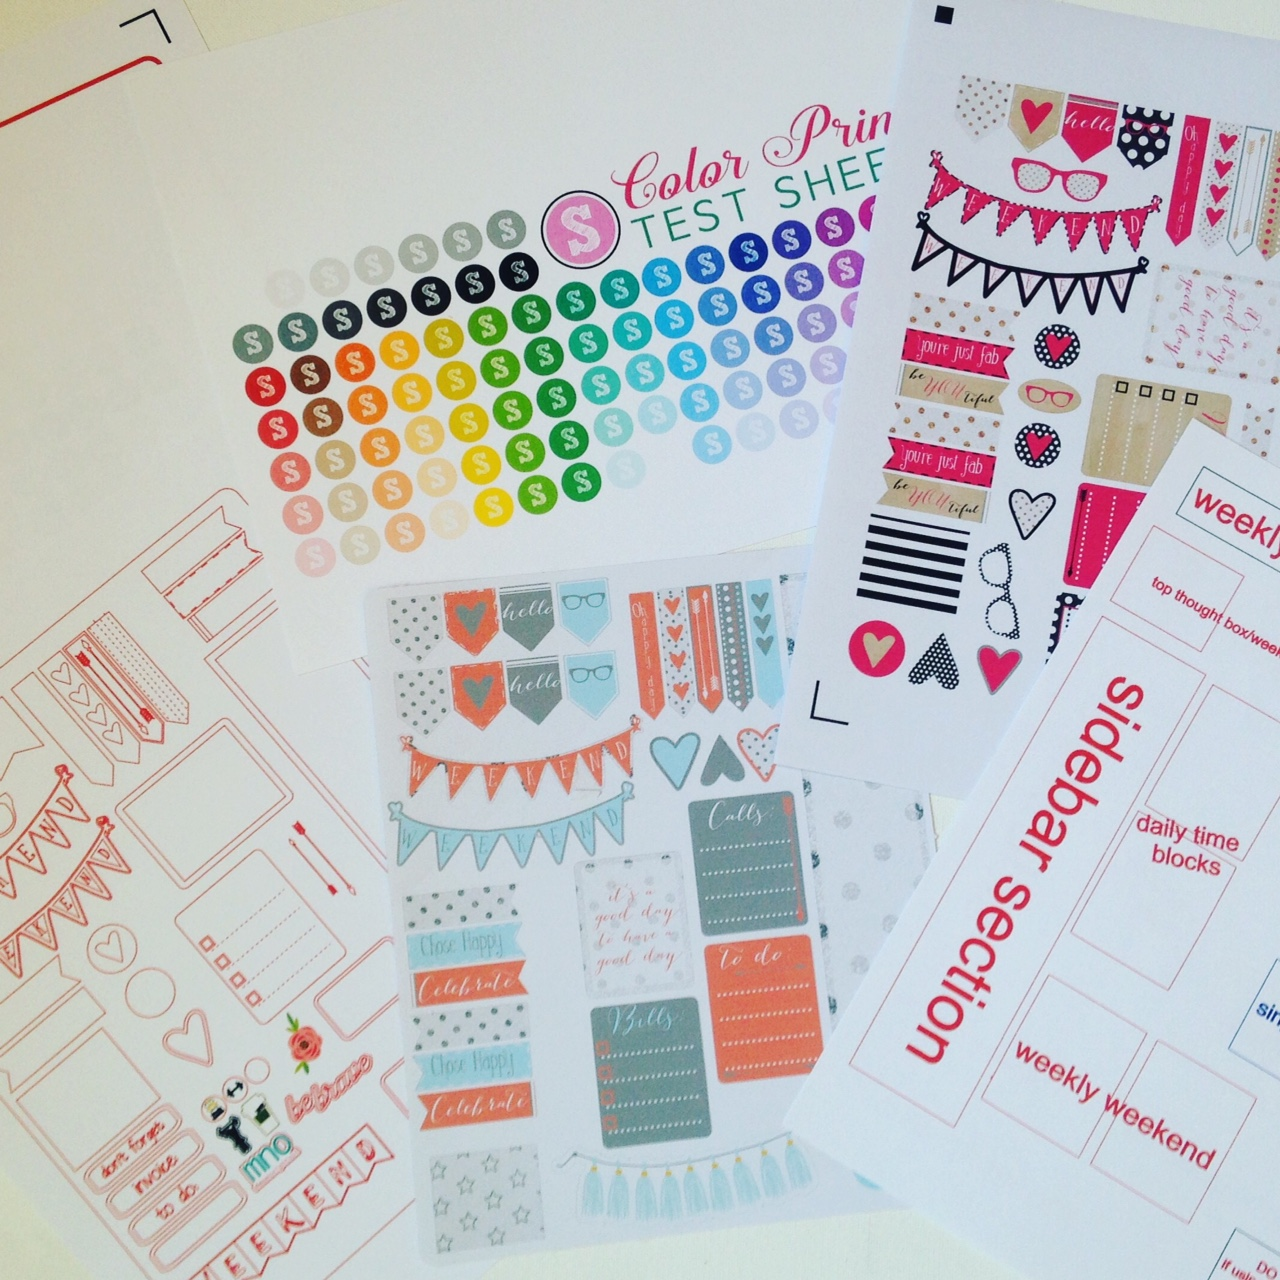 Silhouette planner stickers ebook silhouette cameo cameo silhouette silhouette machine silhouette cameo sale silhouette cutter cameo machine silhouette cutting machine fandeluxe Image collections